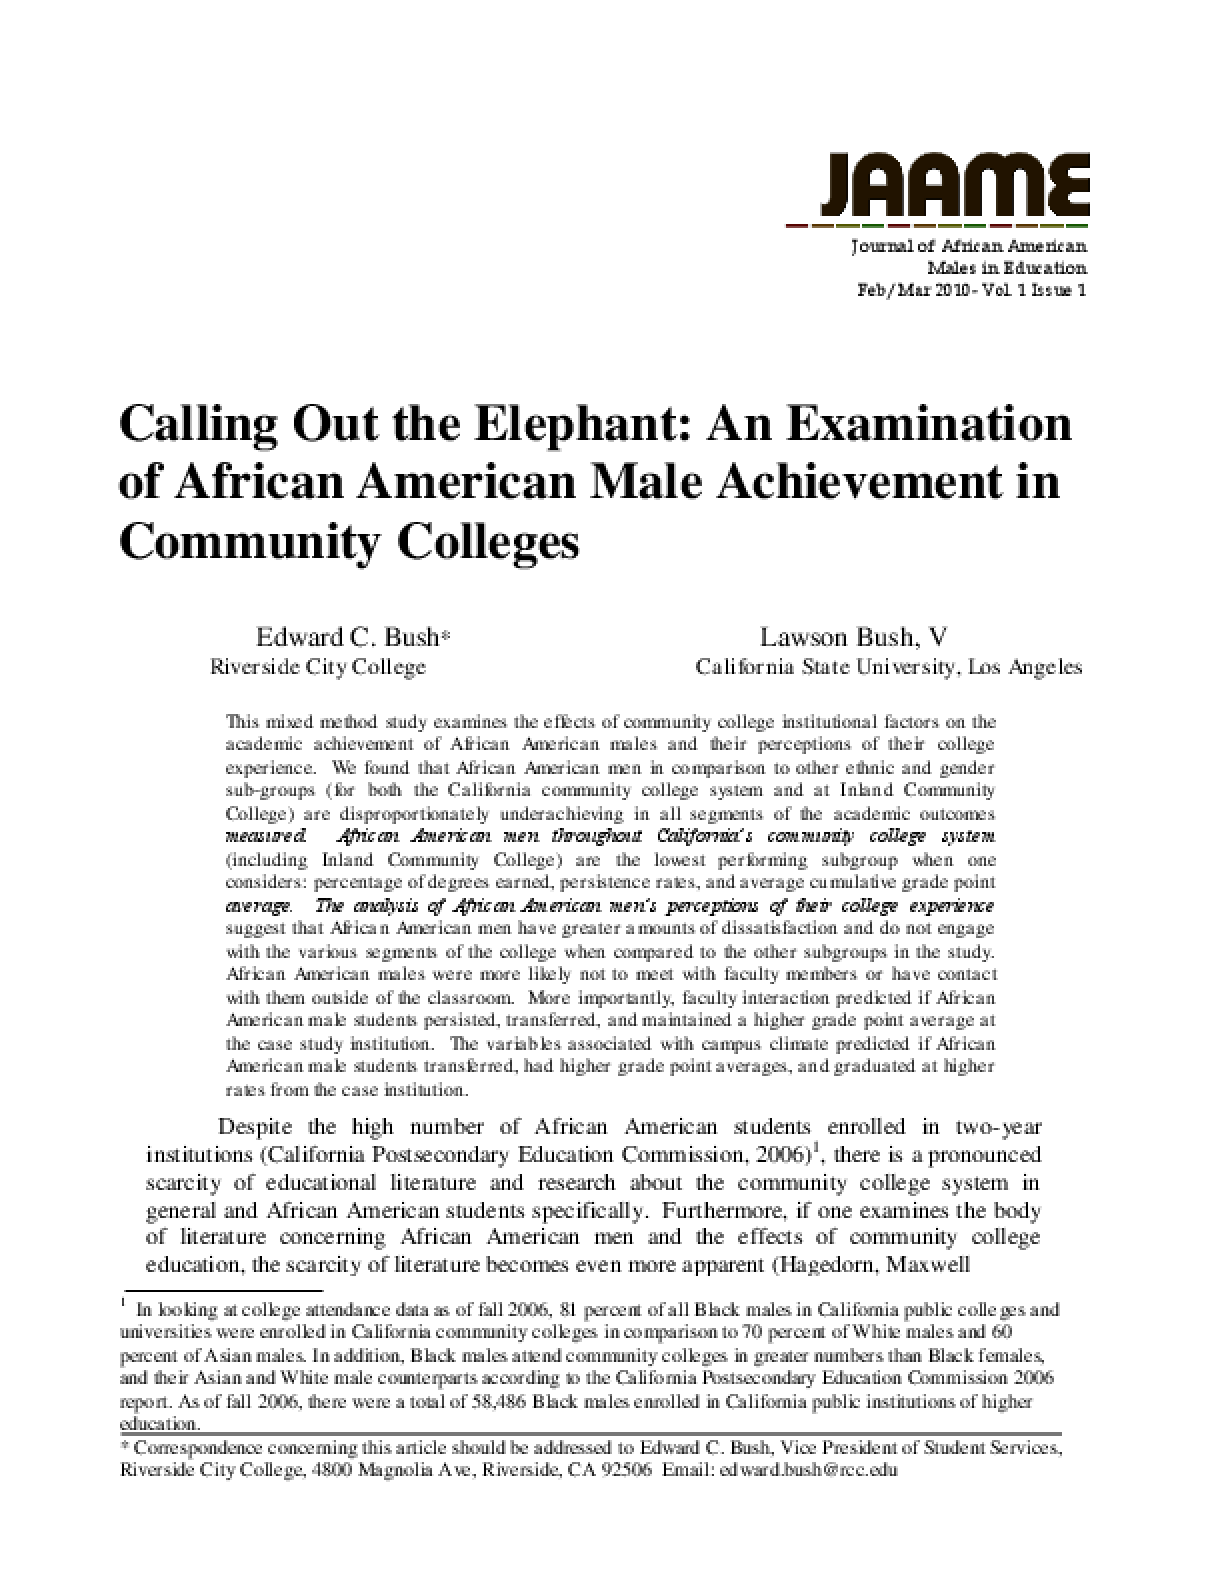 Calling Out the Elephant: An Examination of African American Male Achievement in Community Colleges